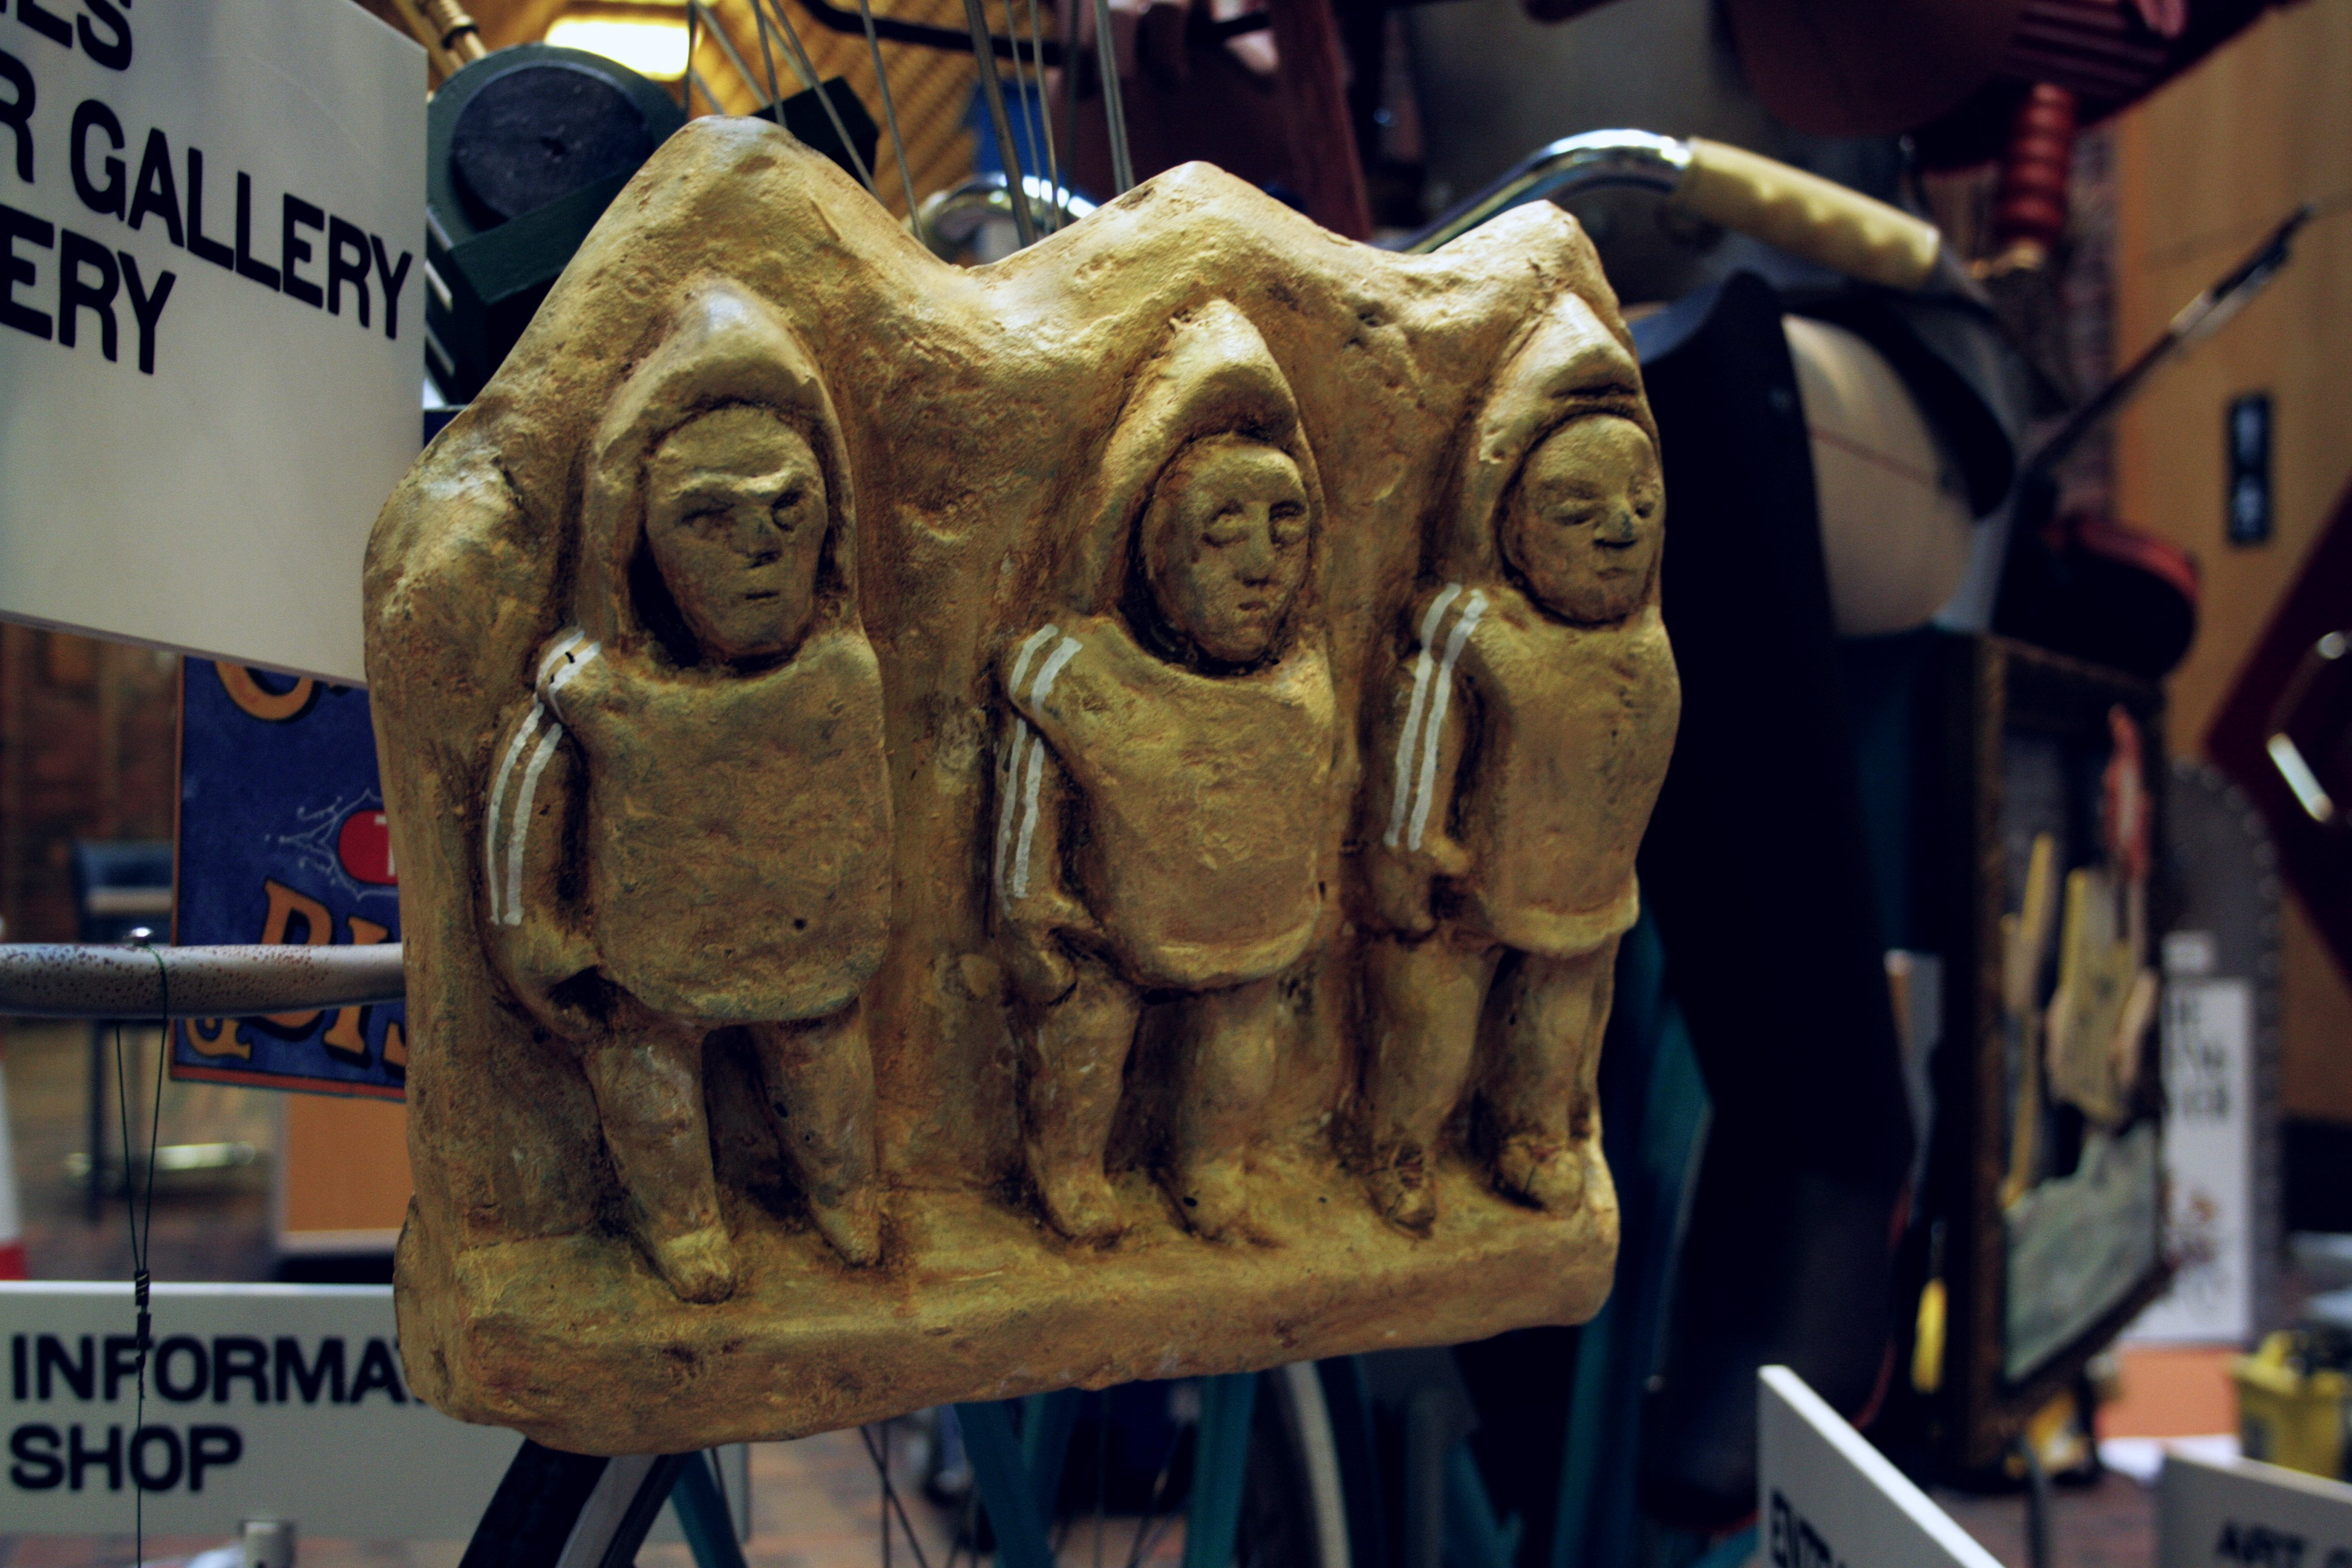 The Flying Reiver's three hoodies - based on a real Roman statue, we made ours in resin and includes some hoody stripes.